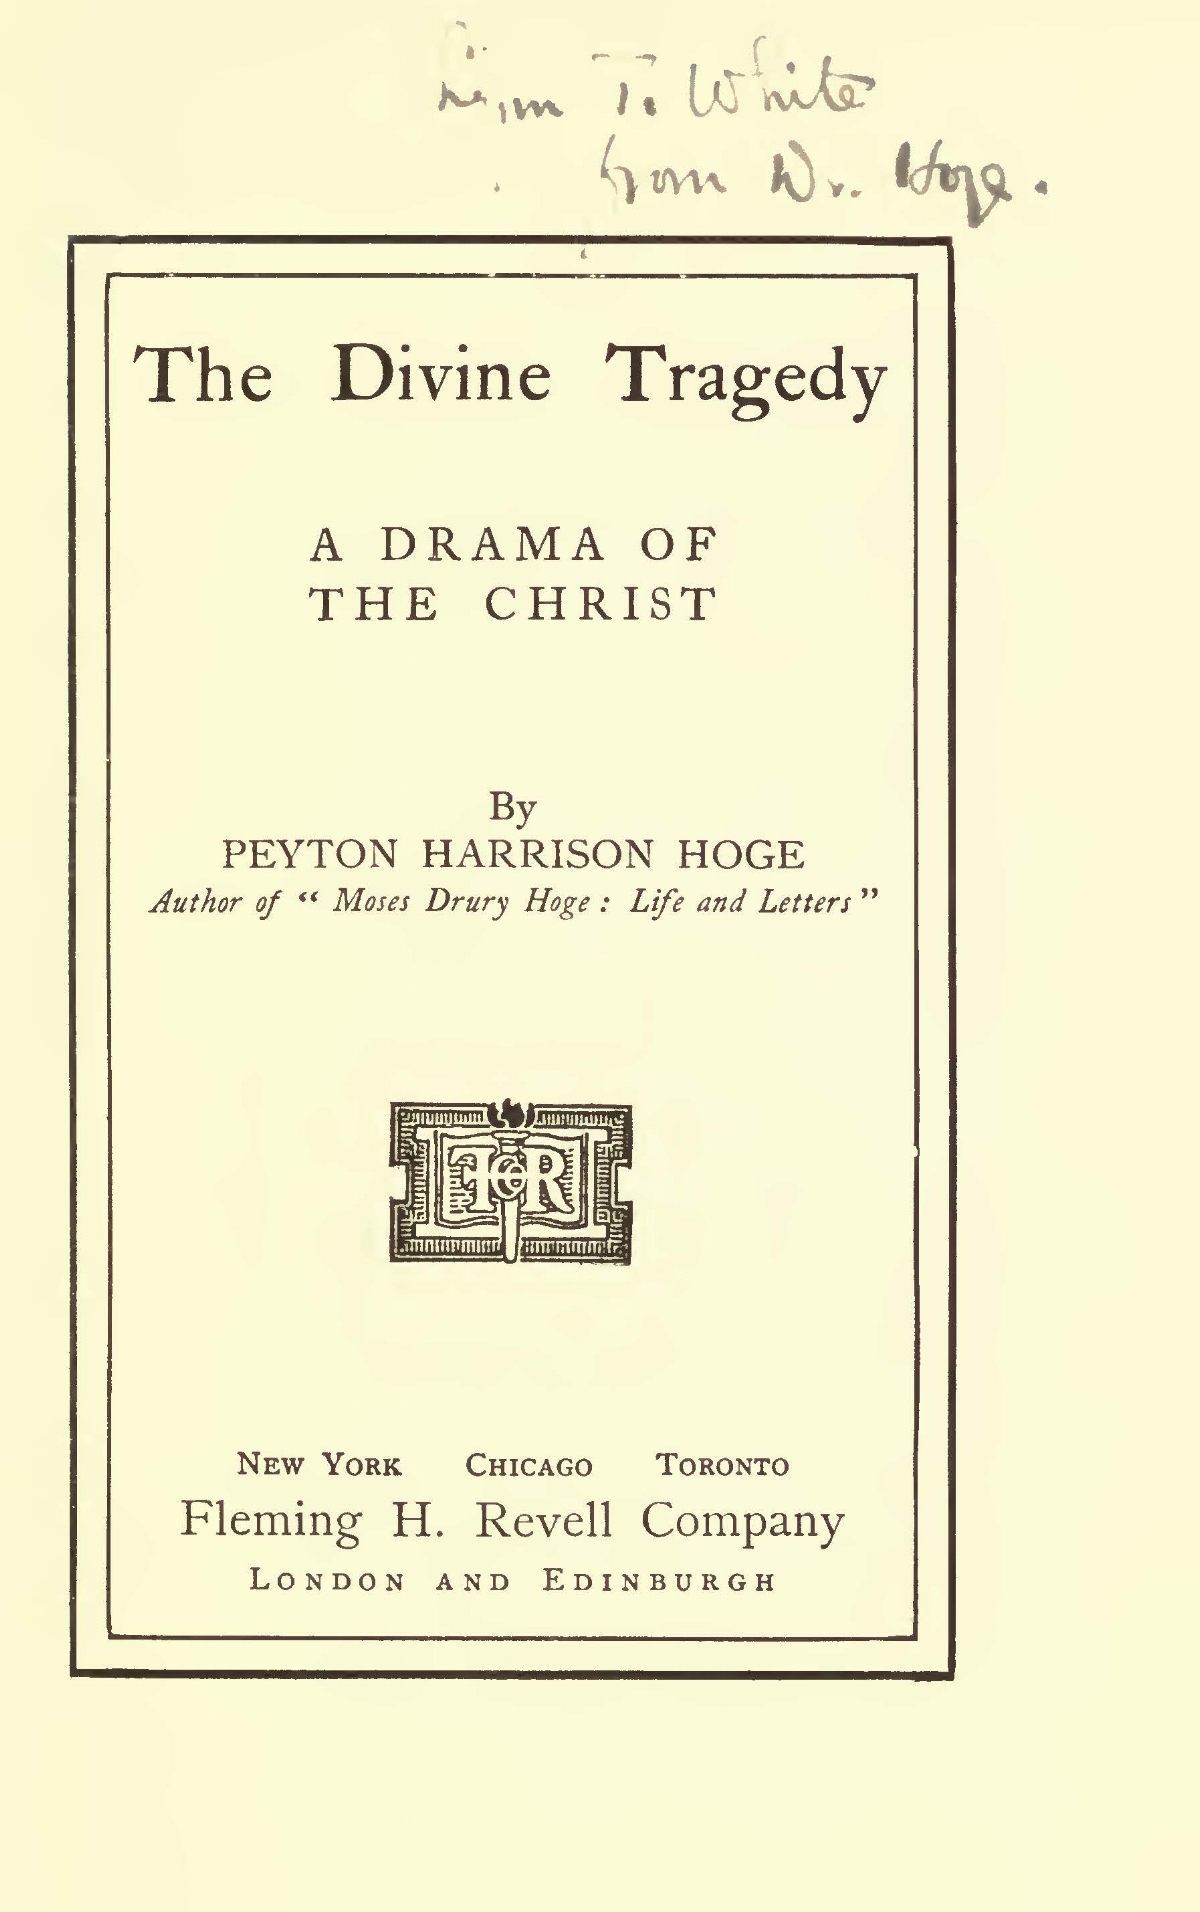 Hoge, Peyton Harrison, The Divine Tragedy, a Drama of the Christ Title Page.jpg